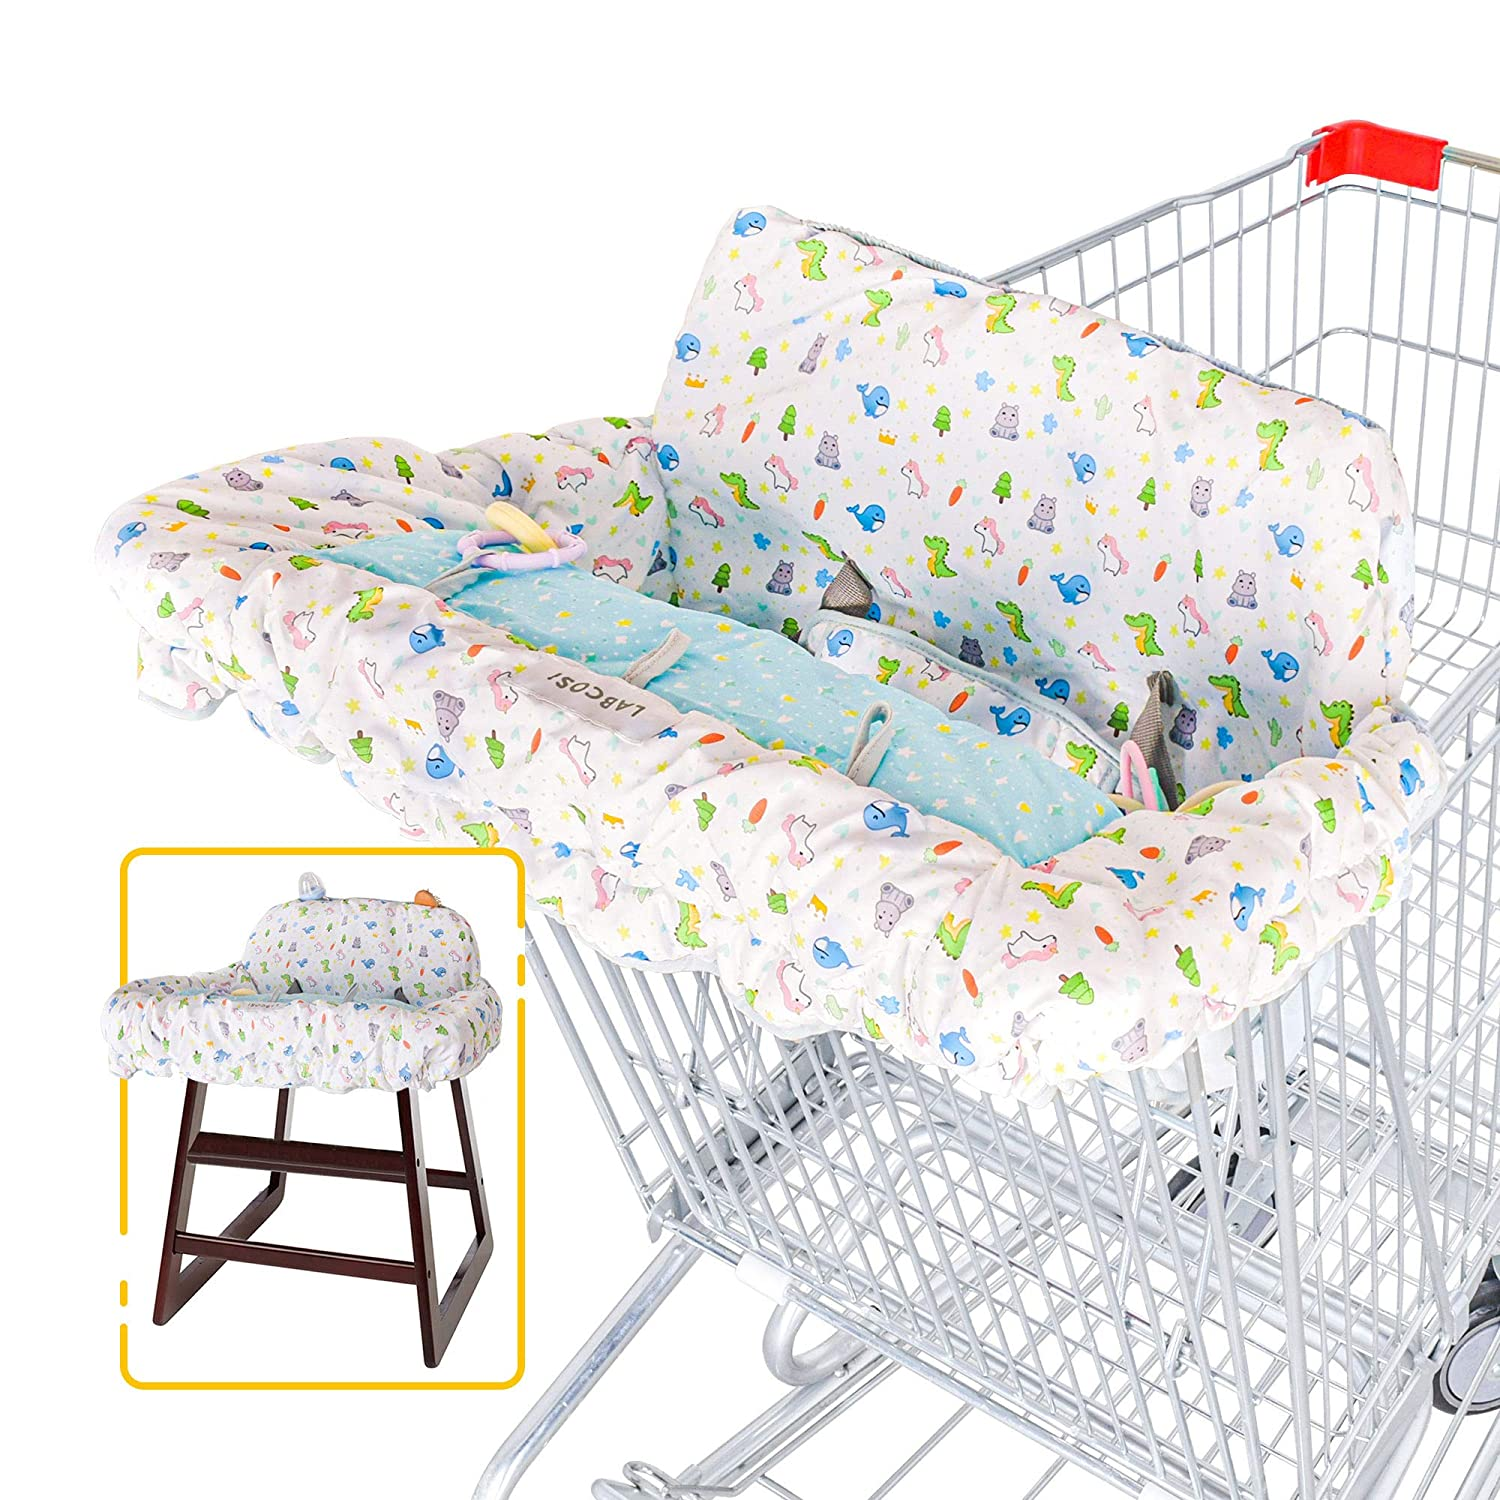 Labcosi Shopping Cart Cover and High Chair Cover for Baby and Toddler, Grocery Cart Cushion Cover with Safety Harness